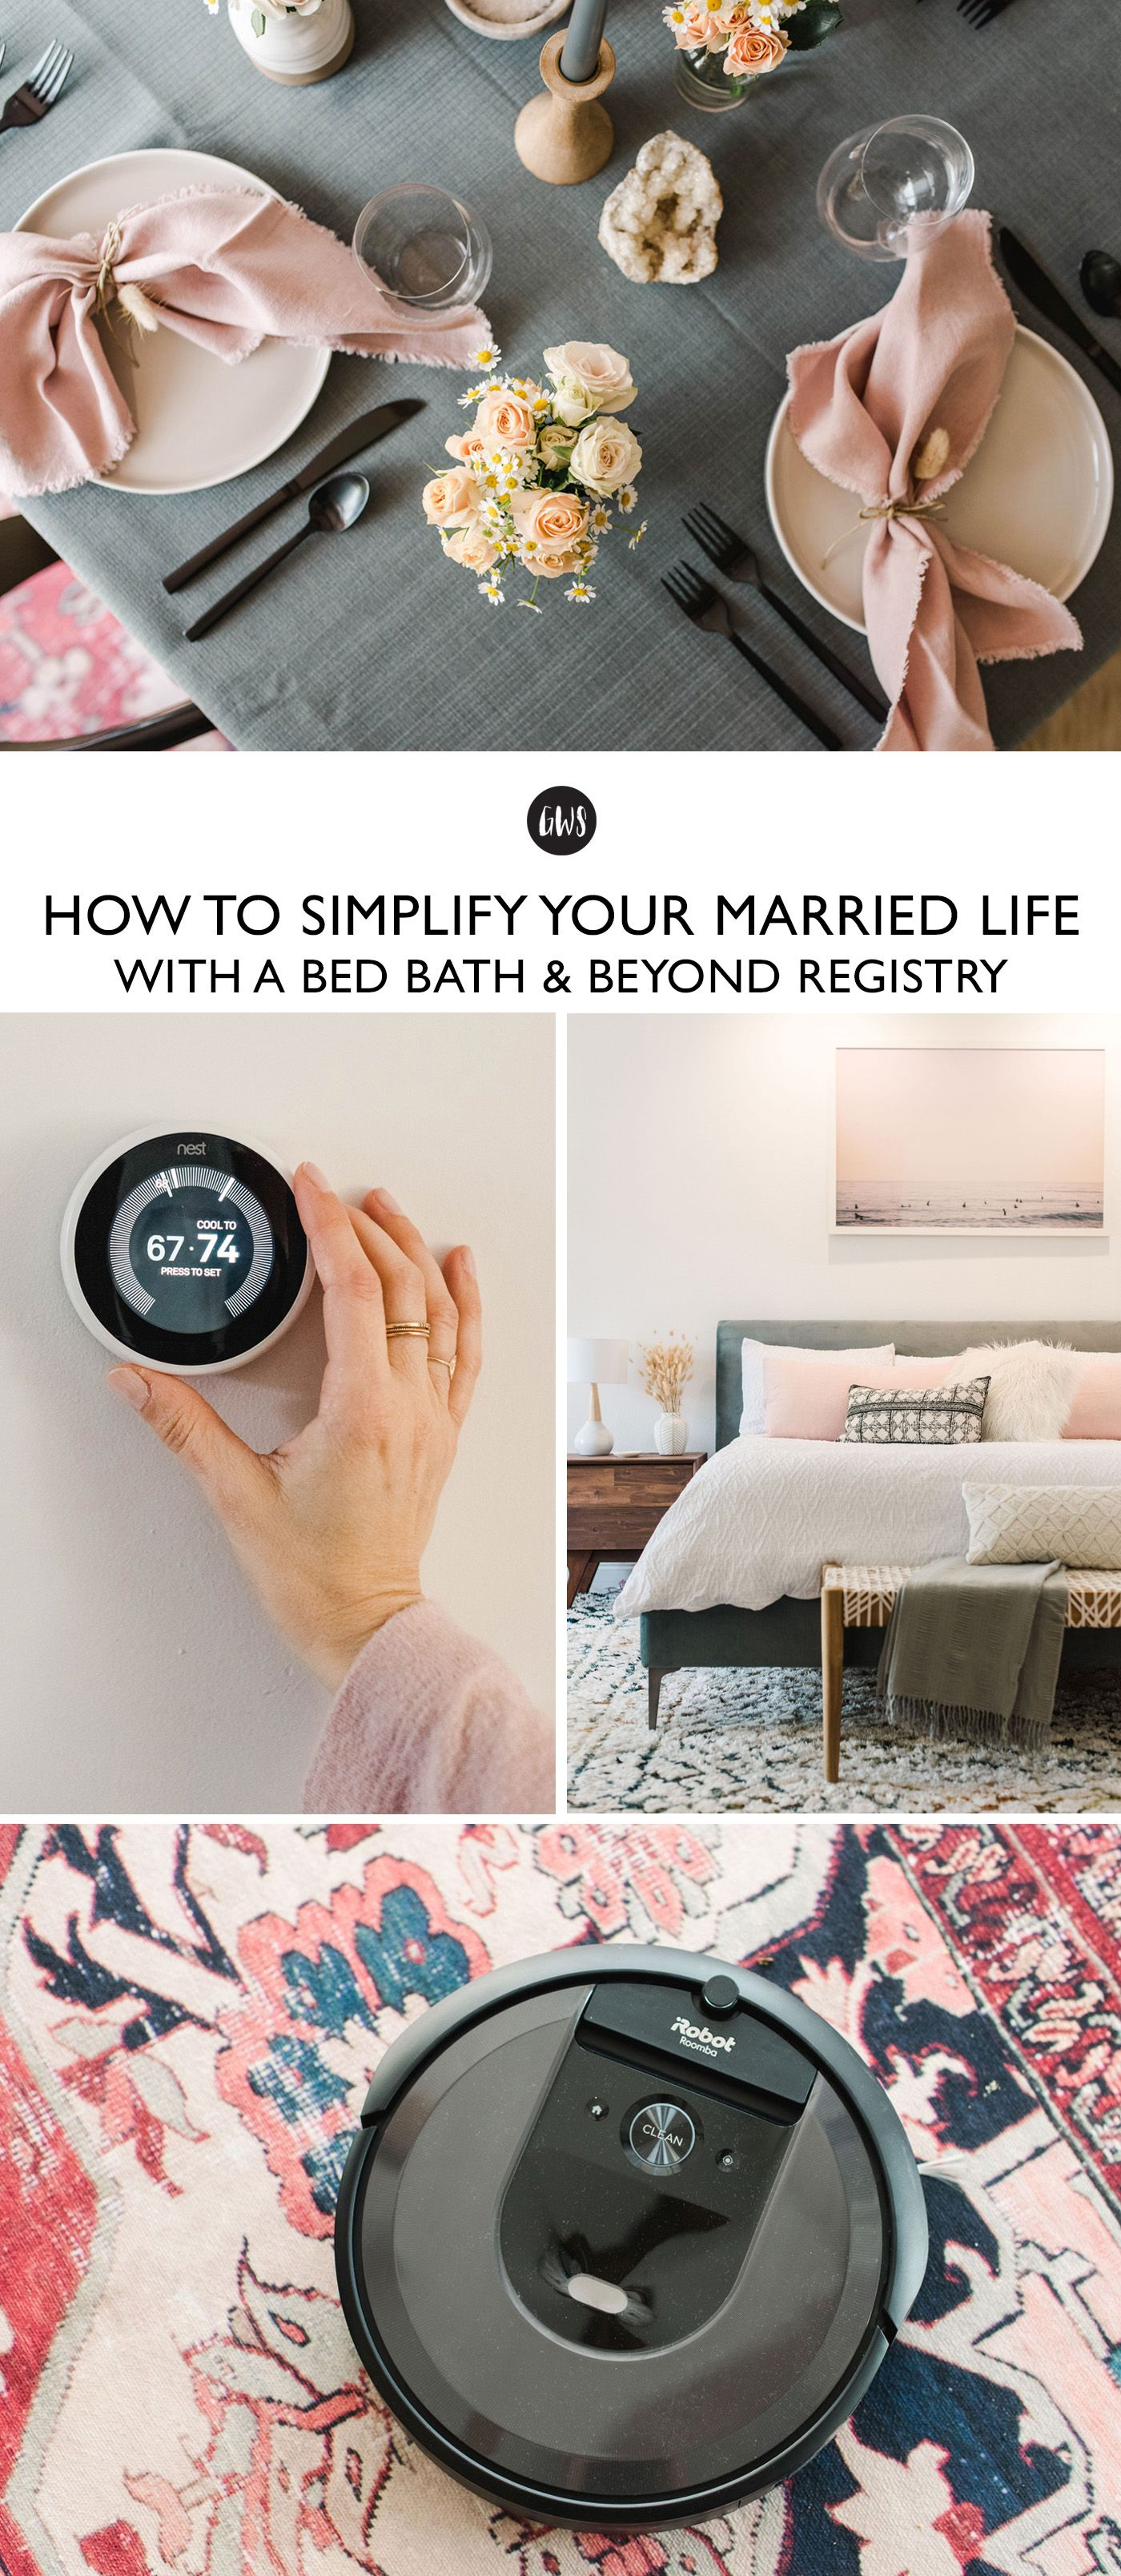 How To Simplify Your Married Life With A Bed Bath Beyond Registry Green Wedding Shoes Bed Bath And Beyond Bed Bath Married Life